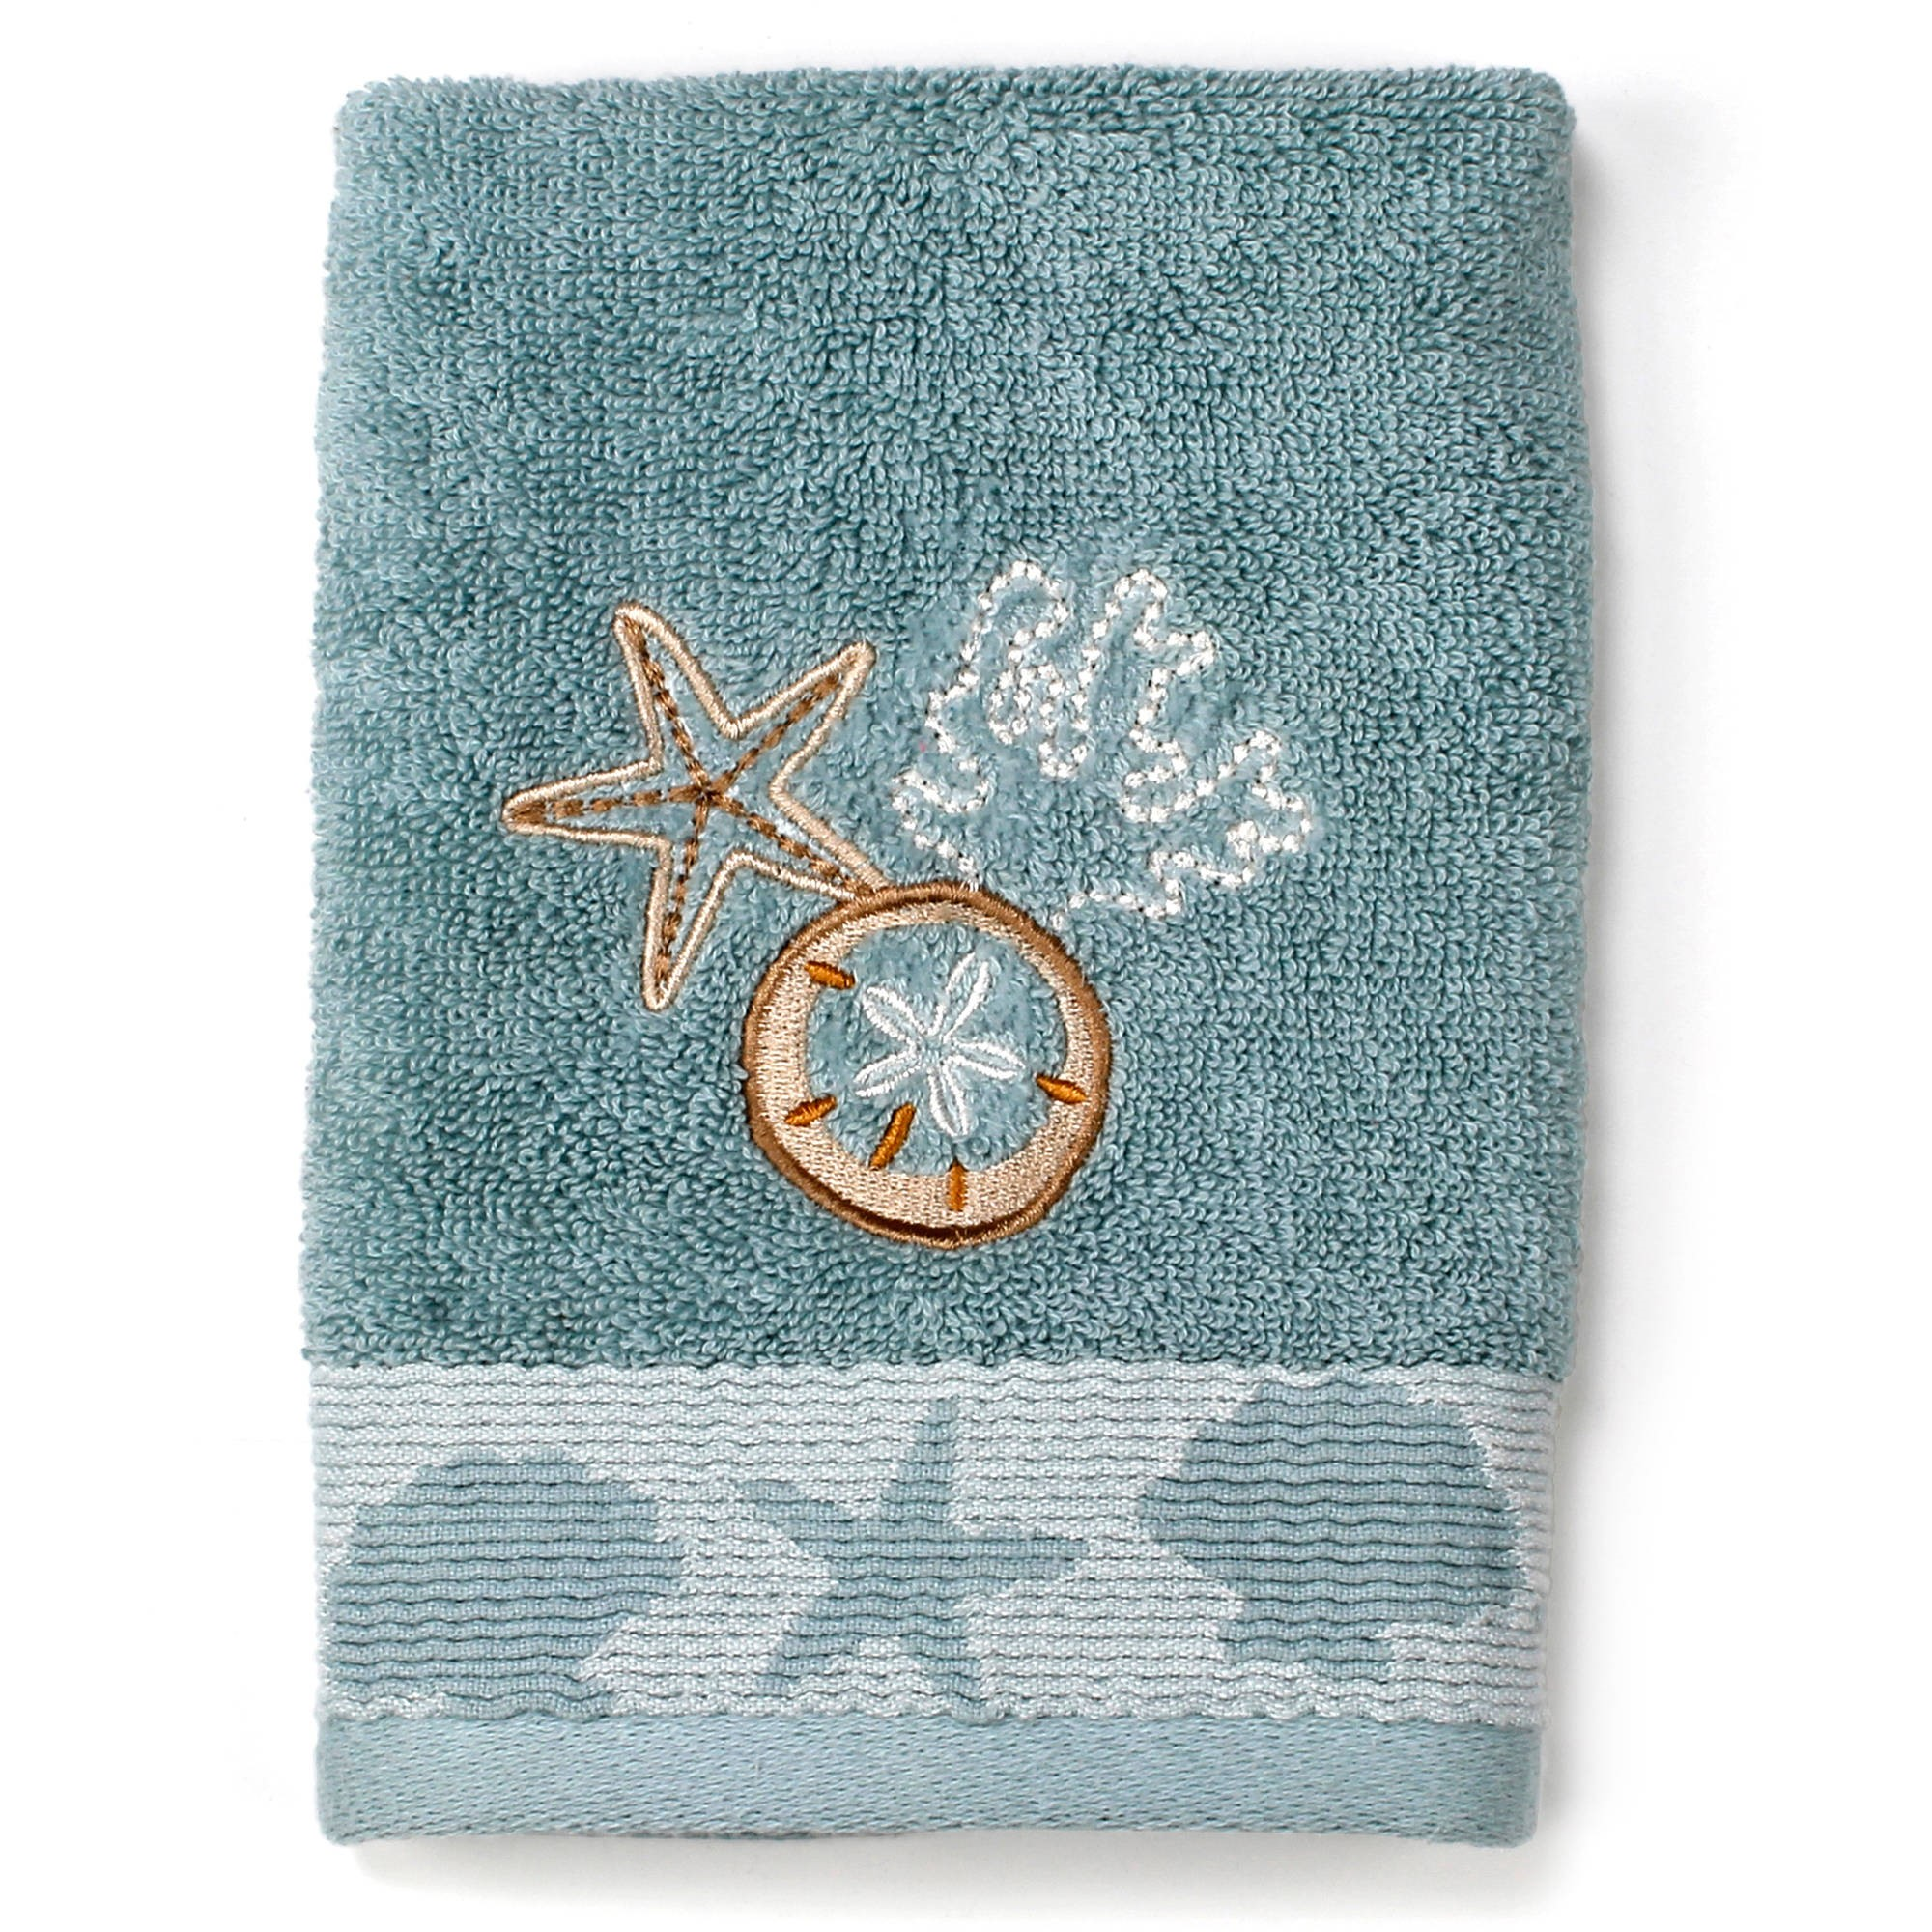 Better Homes and Gardens Coastal Bath Towel Collection by Saturday Knight LTD